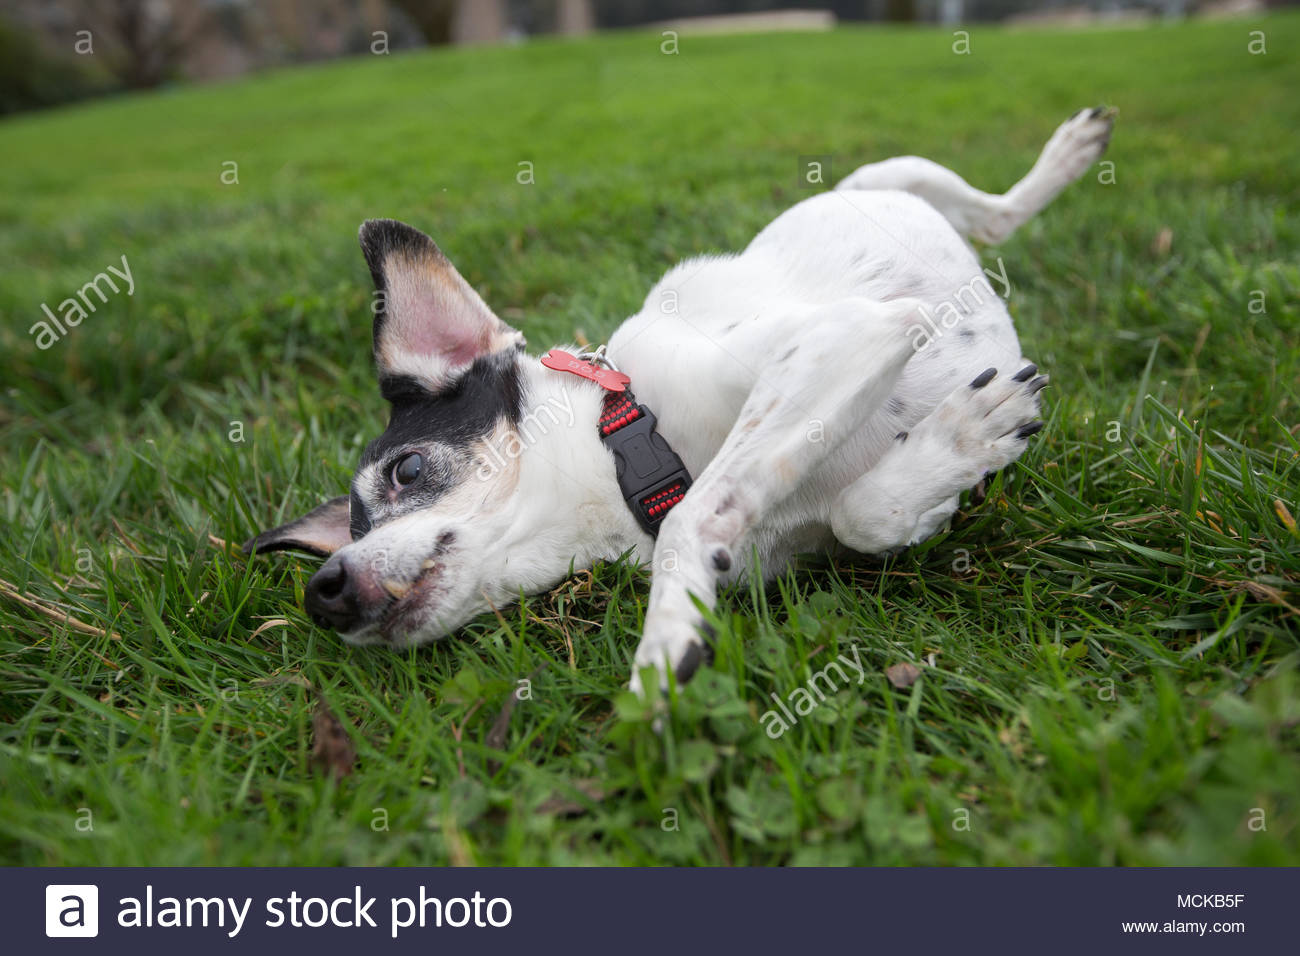 Senior terrier dog rolling around in grass with paws in the air - Stock Image